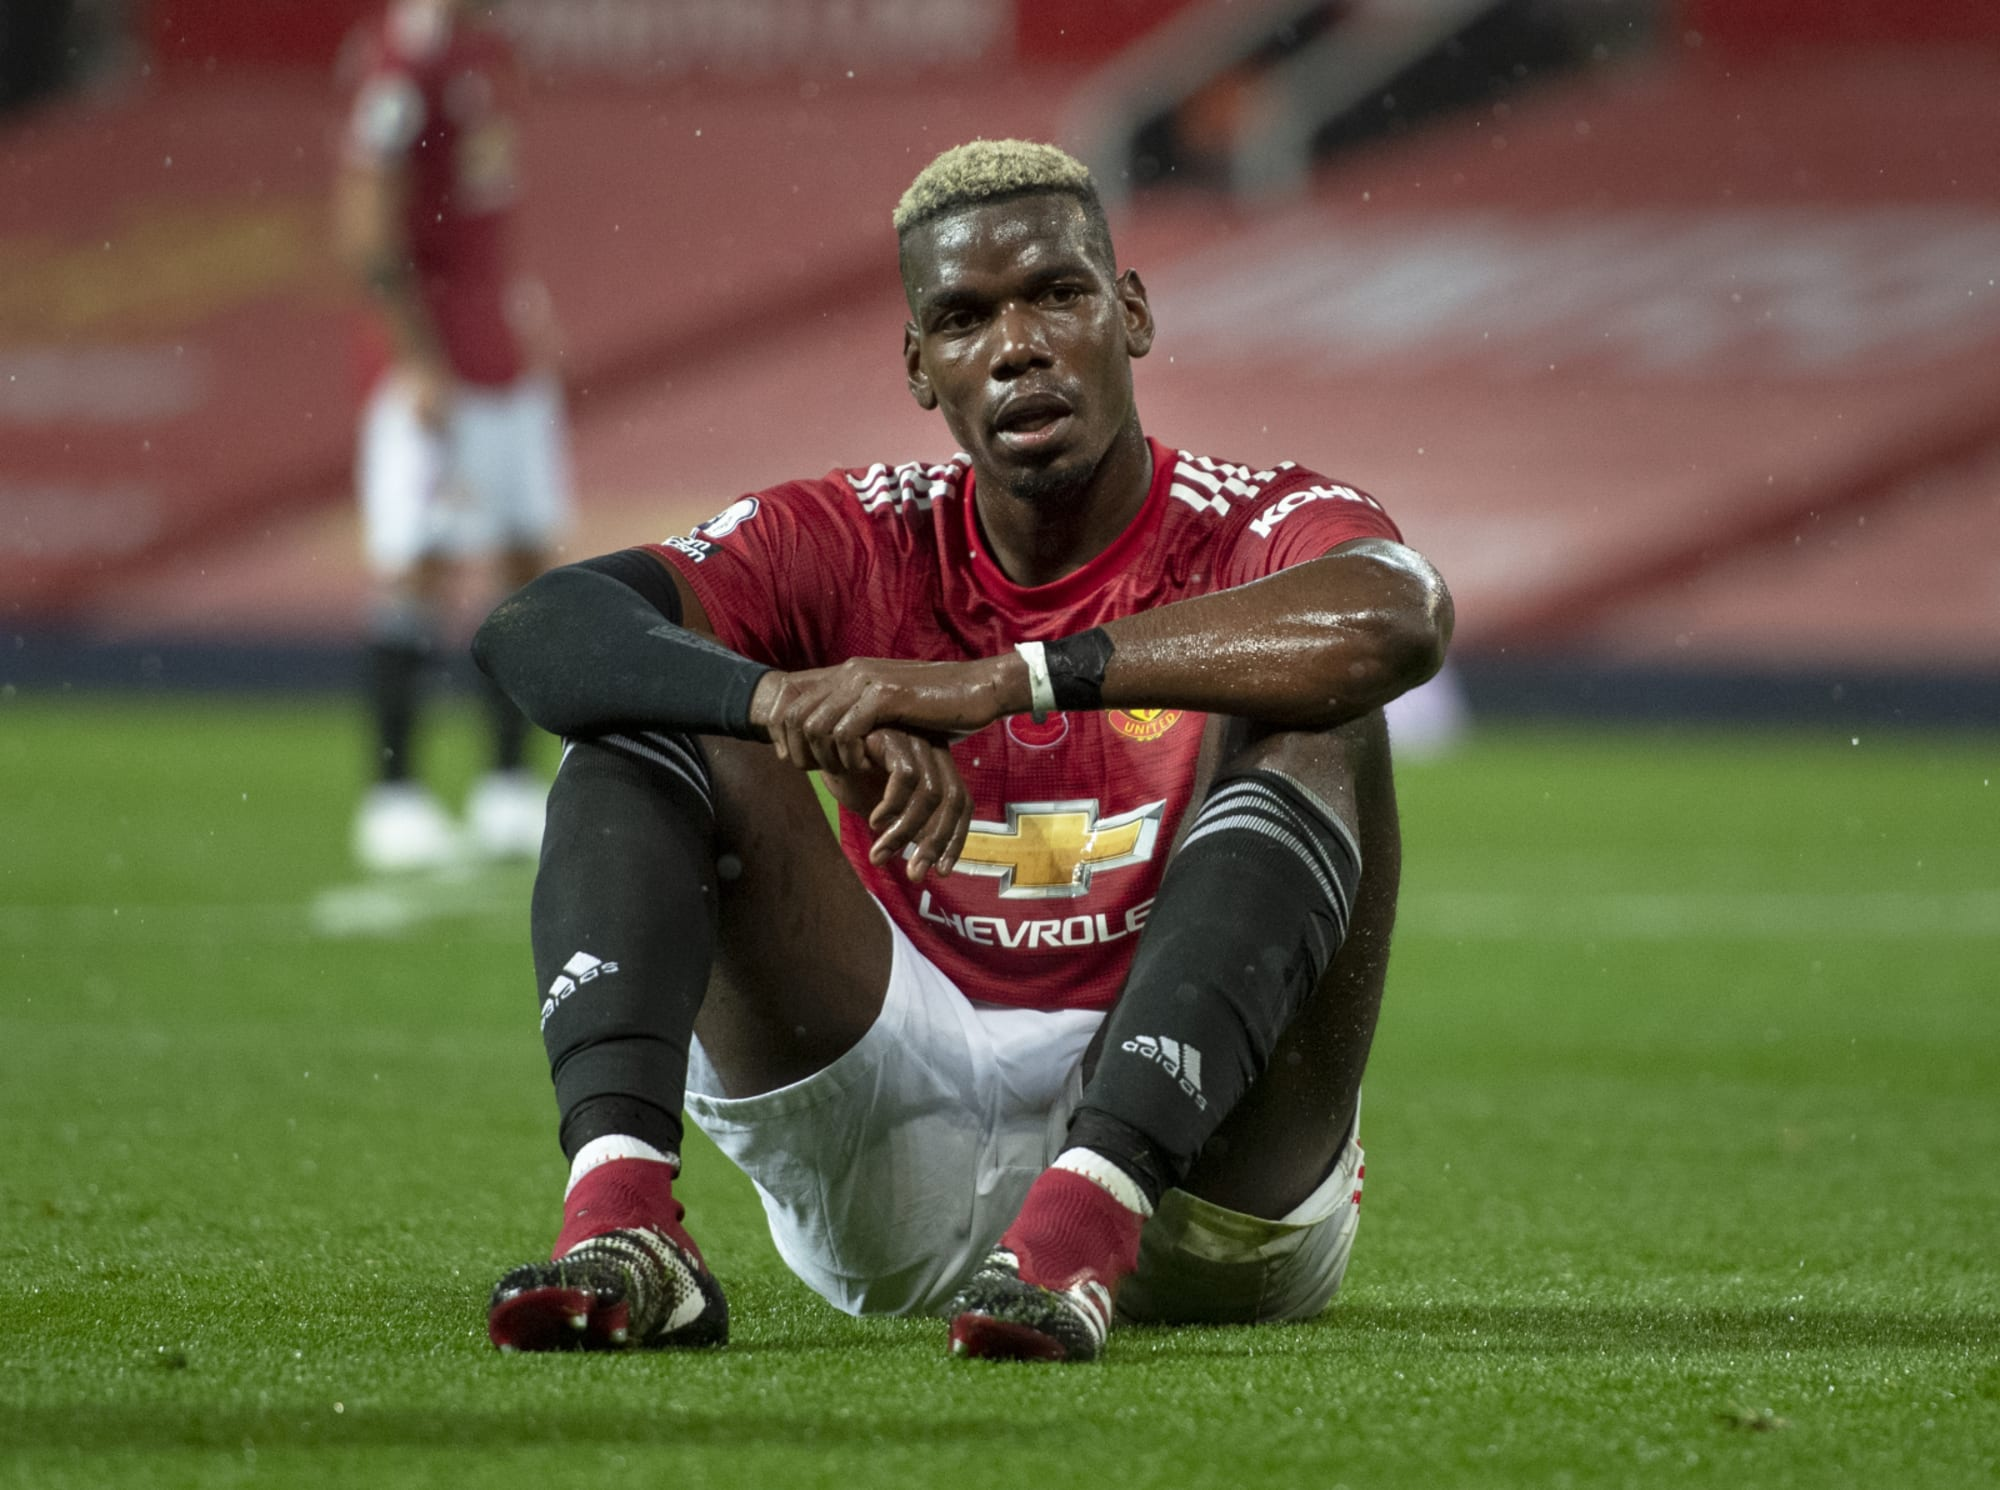 Manchester United linked with €25 million Paul Pogba replacement